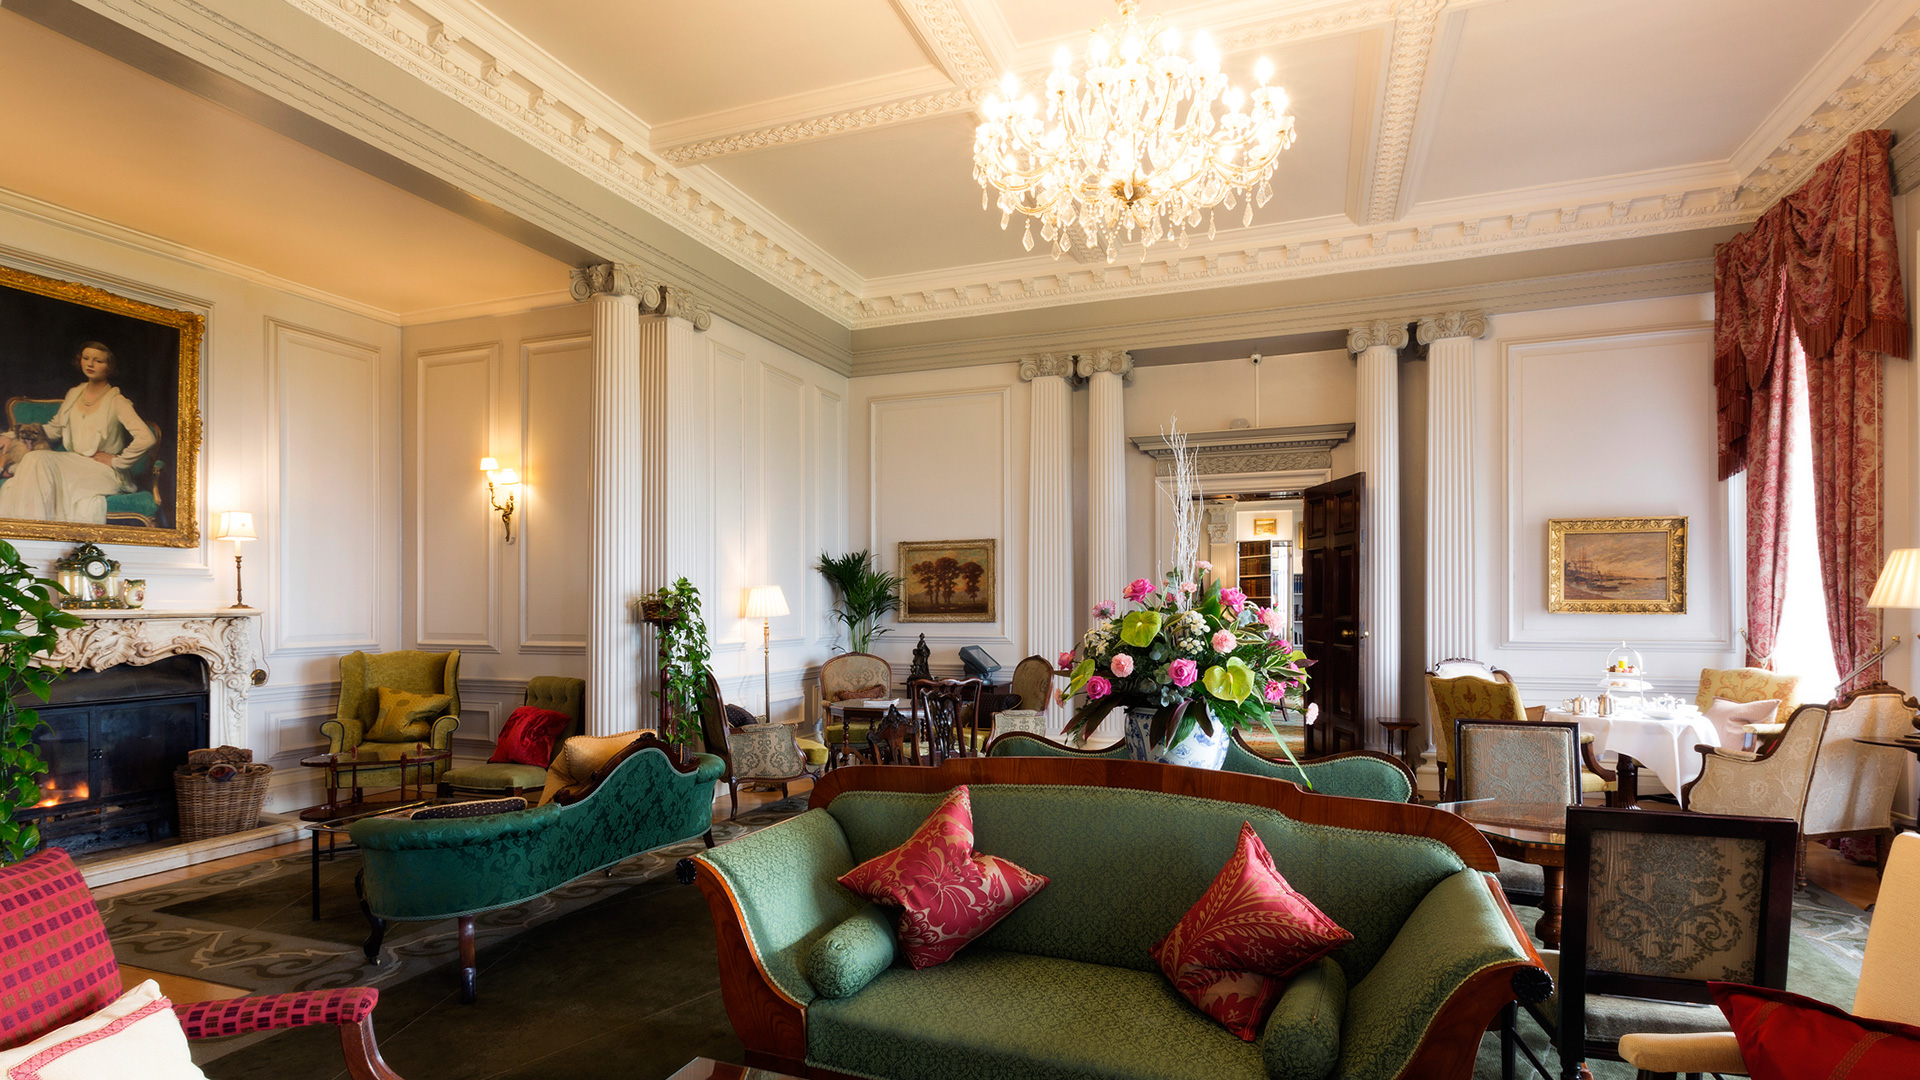 Forum on this topic: Old Park Hall hotel: the country pad , old-park-hall-hotel-the-country-pad/